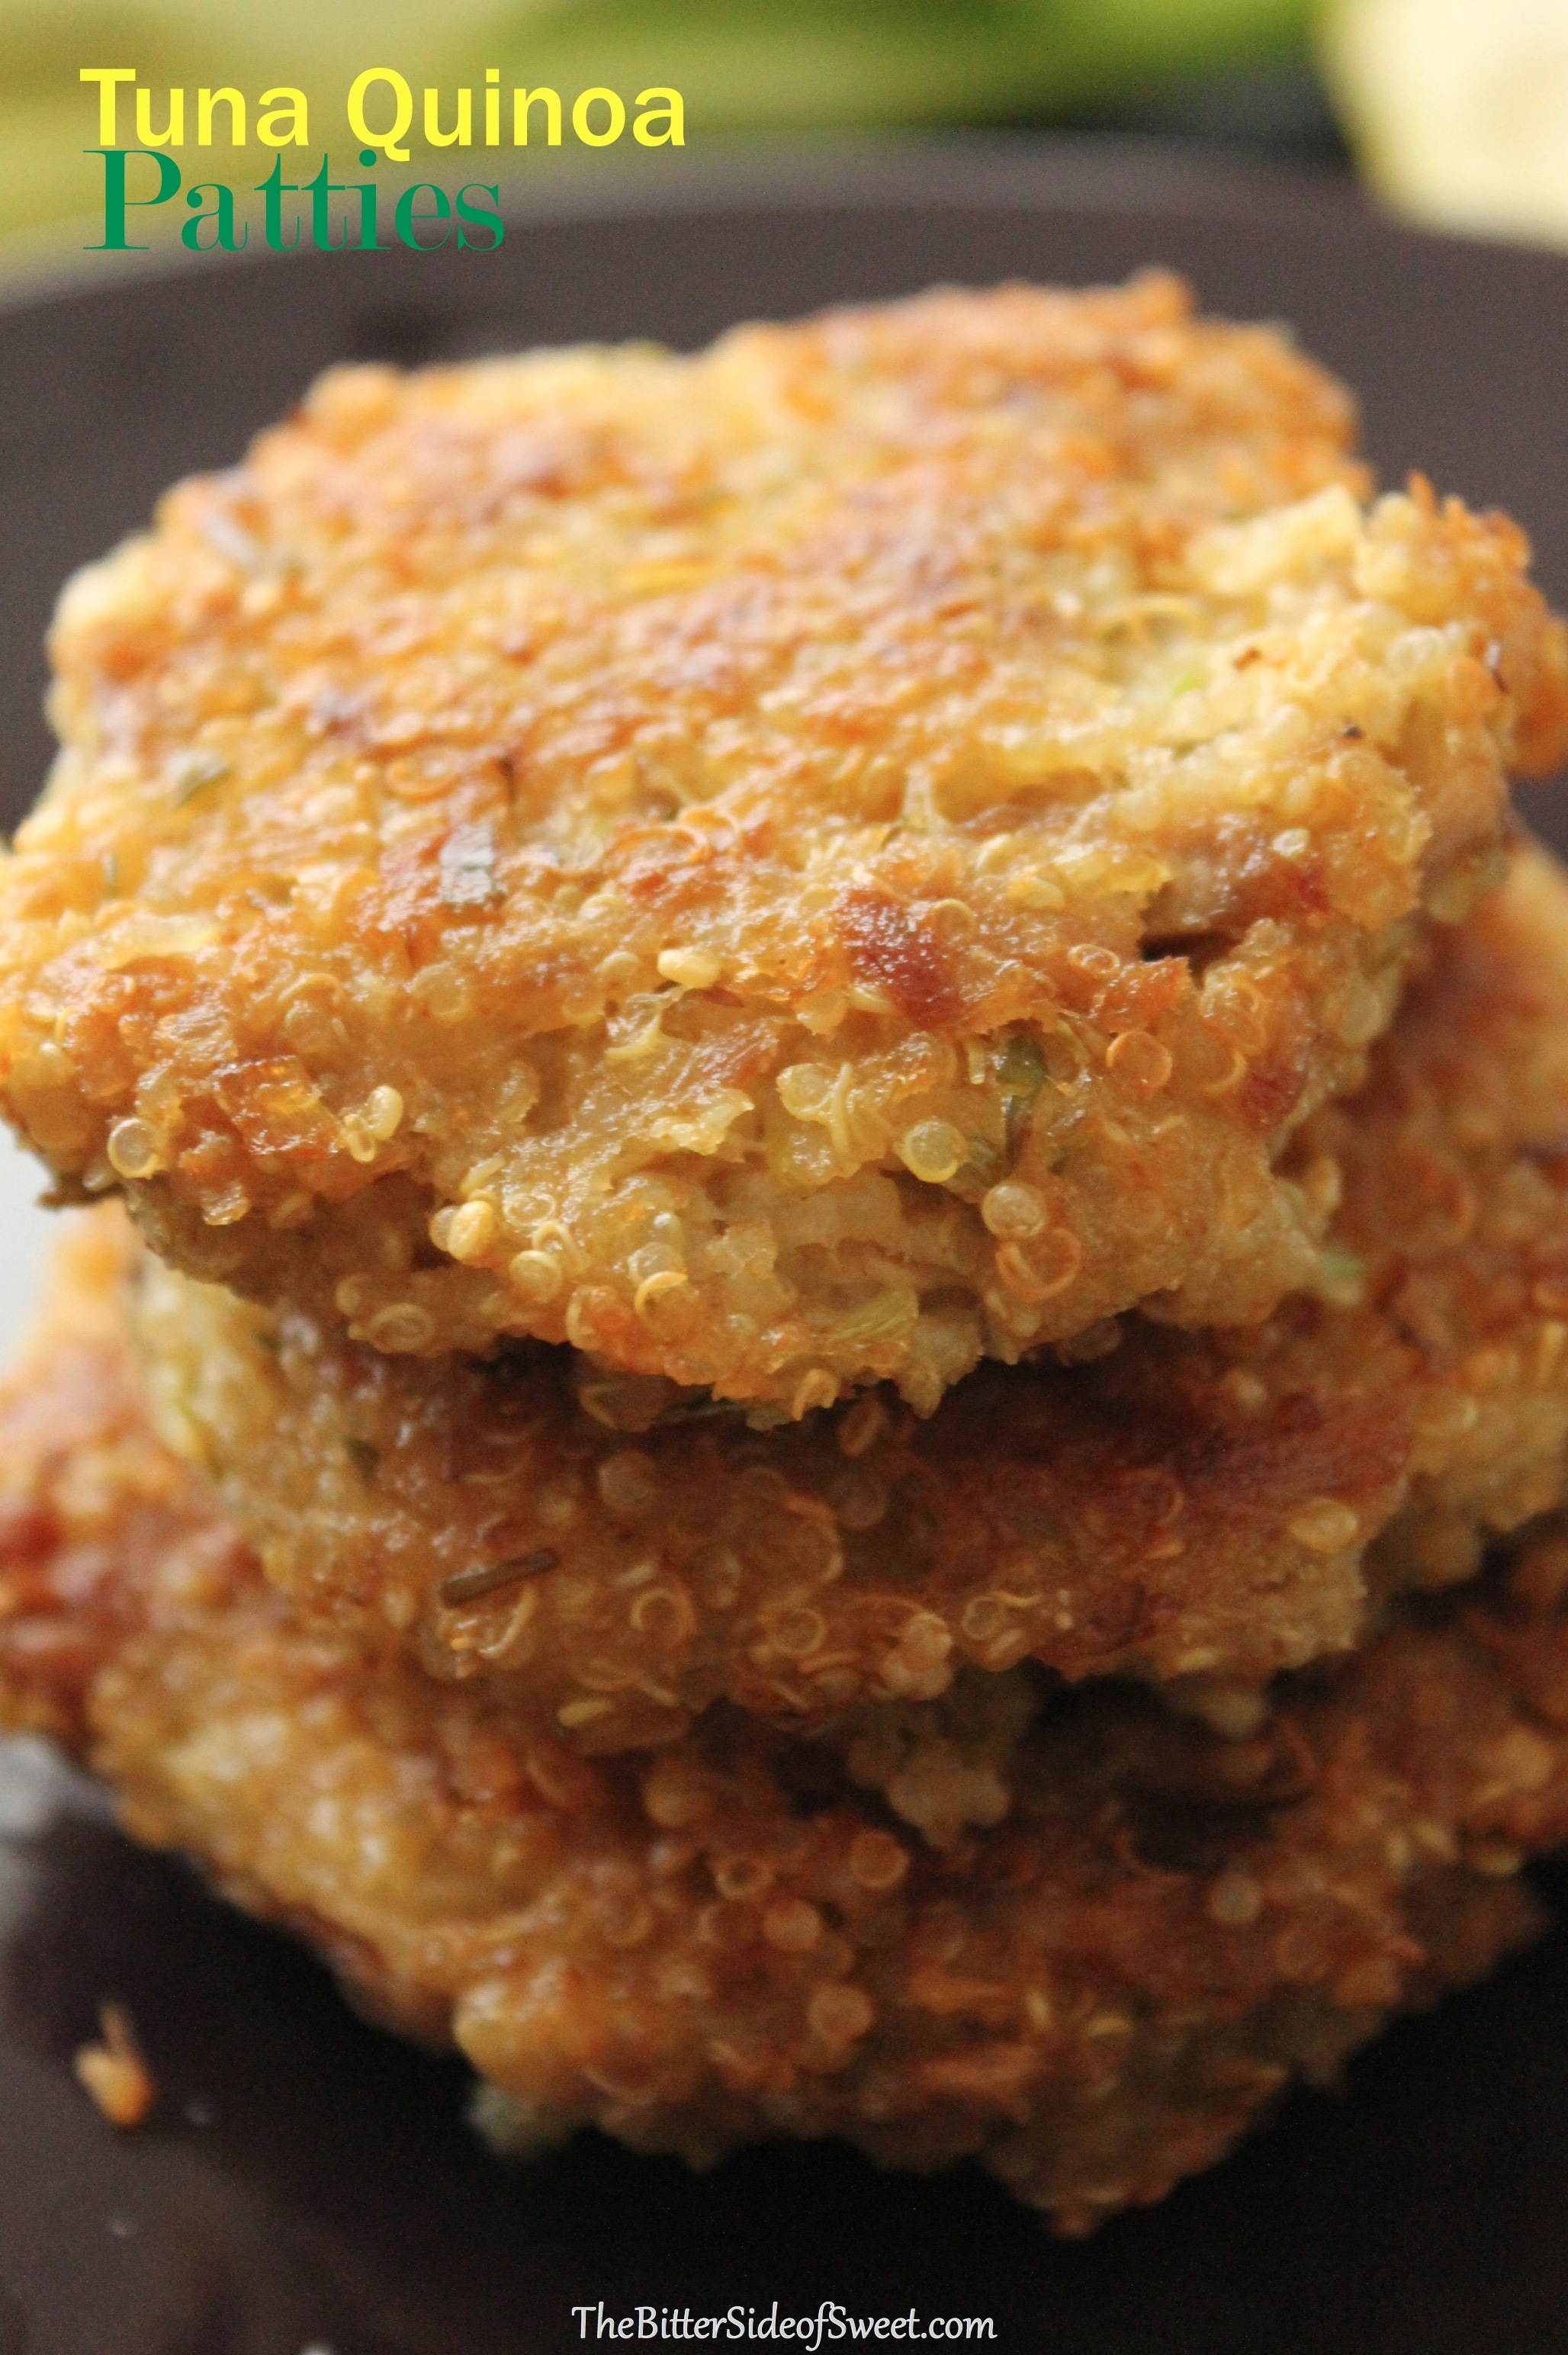 Tuna Quinoa Patties - The Bitter Side of Sweet